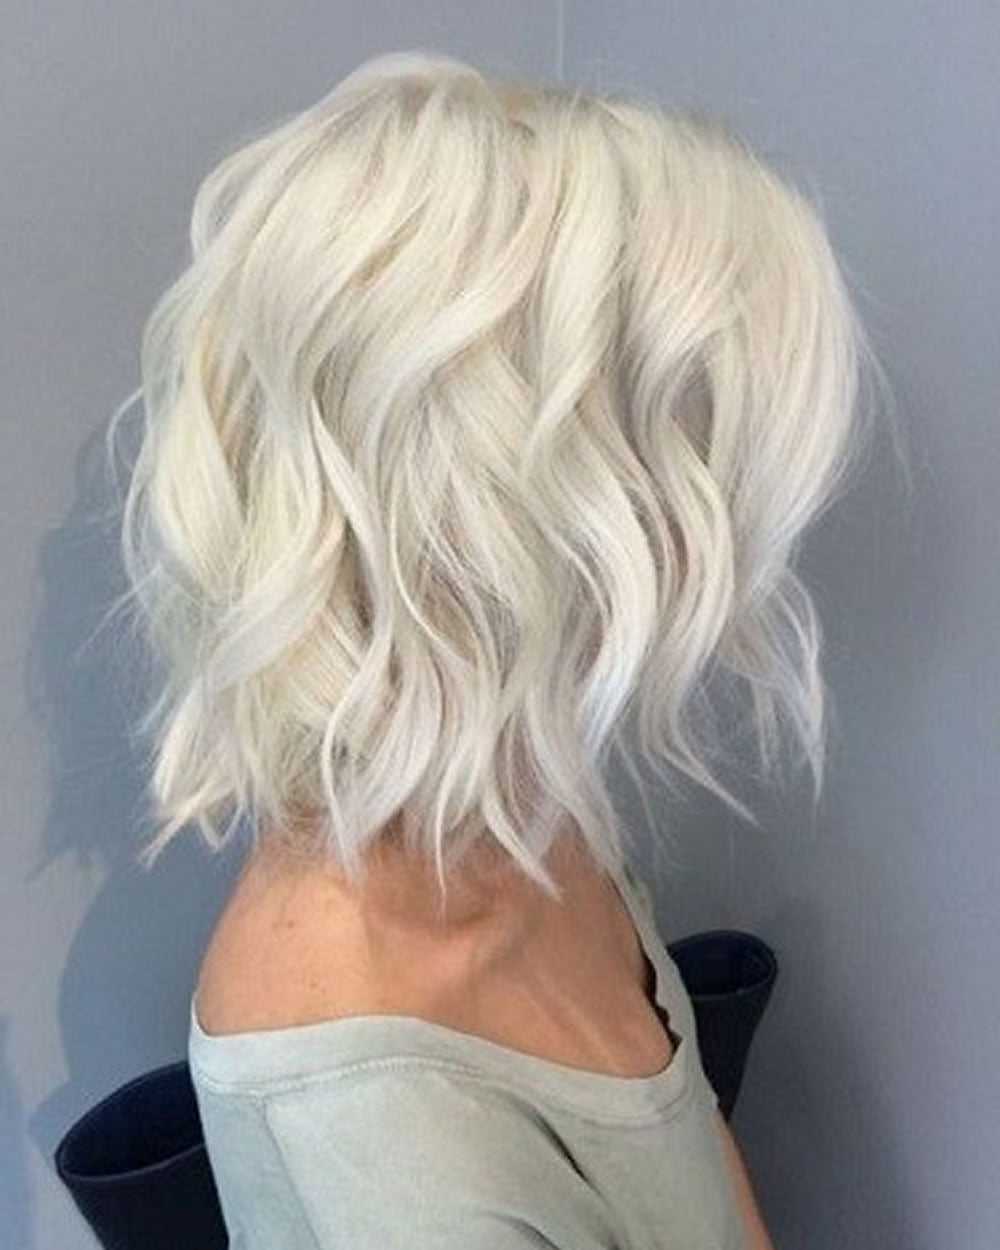 Famous Blonde Balayage Ombre Hairstyles Regarding Balayage Ombre Highlights 2021: Dark, Brunette, Blonde Etc (View 17 of 20)